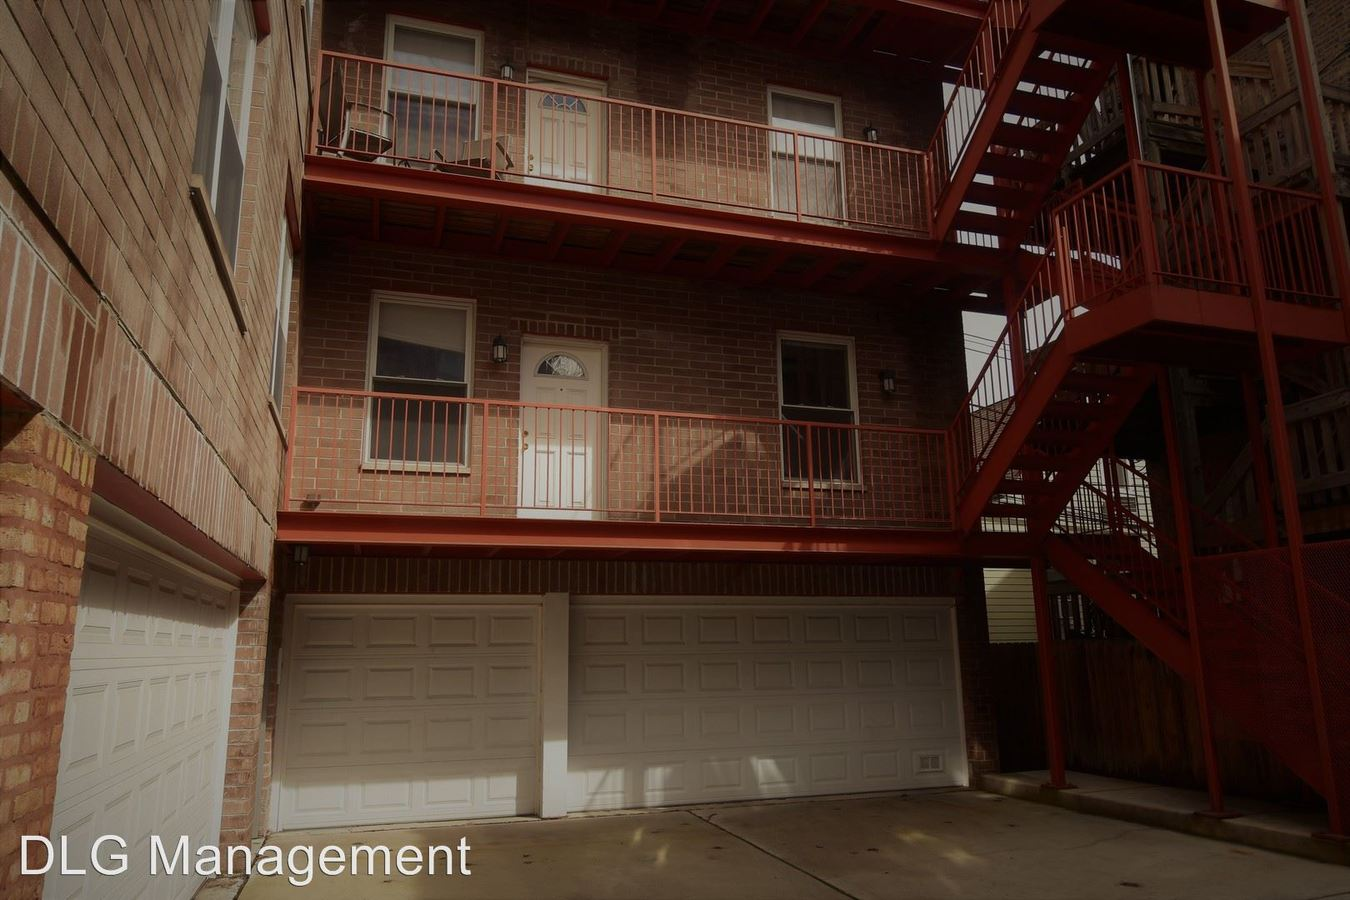 2 Bedrooms 1 Bathroom Apartment for rent at 720 W. Buckingham in Chicago, IL